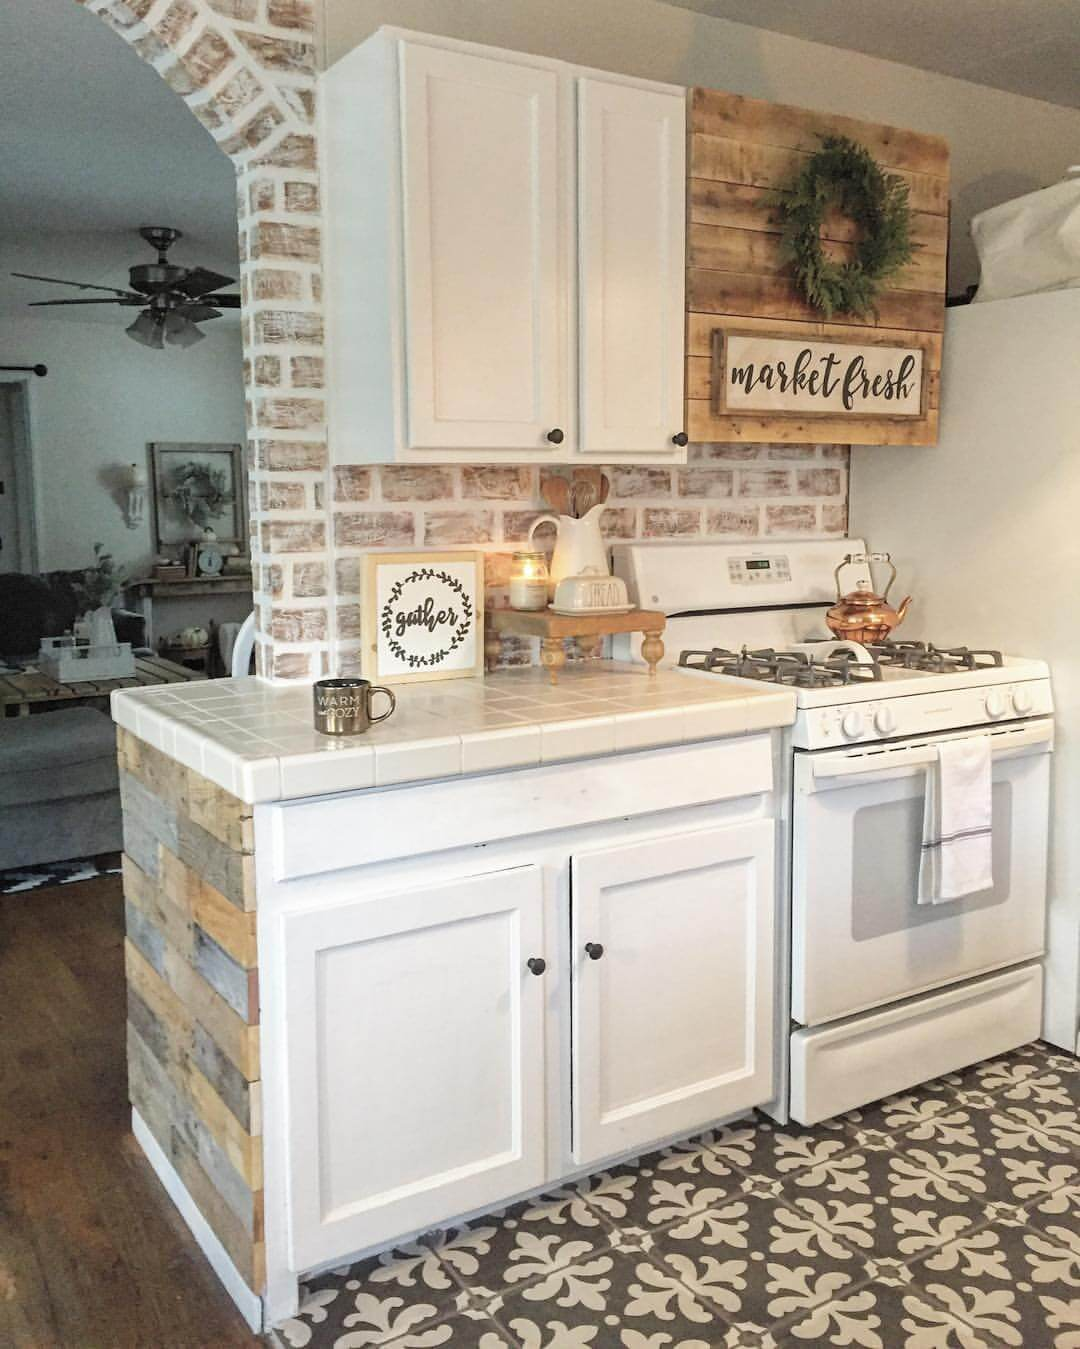 35+ Best Farmhouse Interior Ideas and Designs for 2020 on Farmhouse Rustic Kitchen Ideas  id=99838